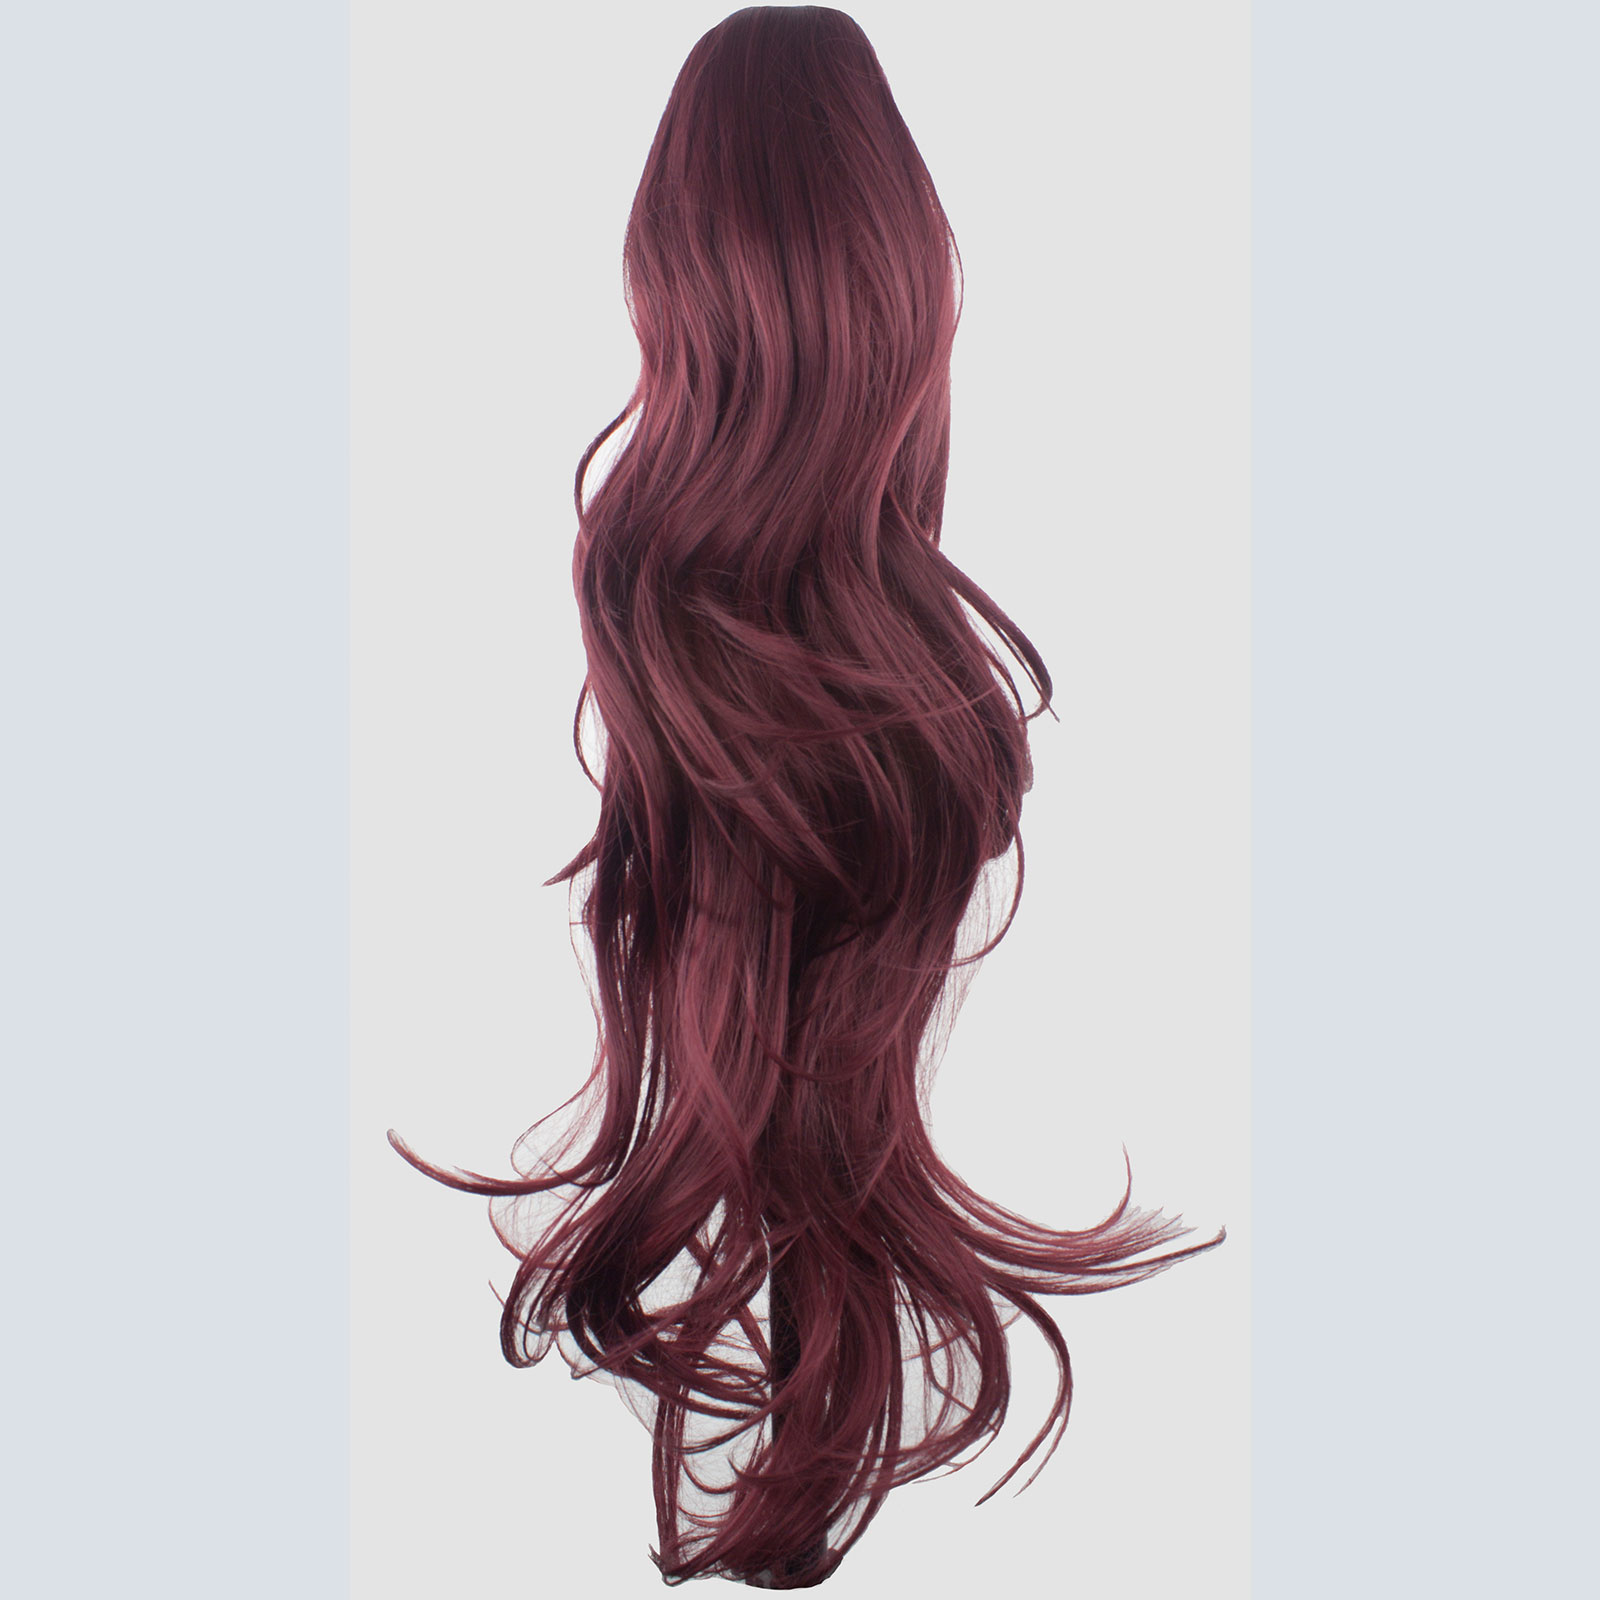 Red Clip In Hair Extensions Uk Prices Of Remy Hair